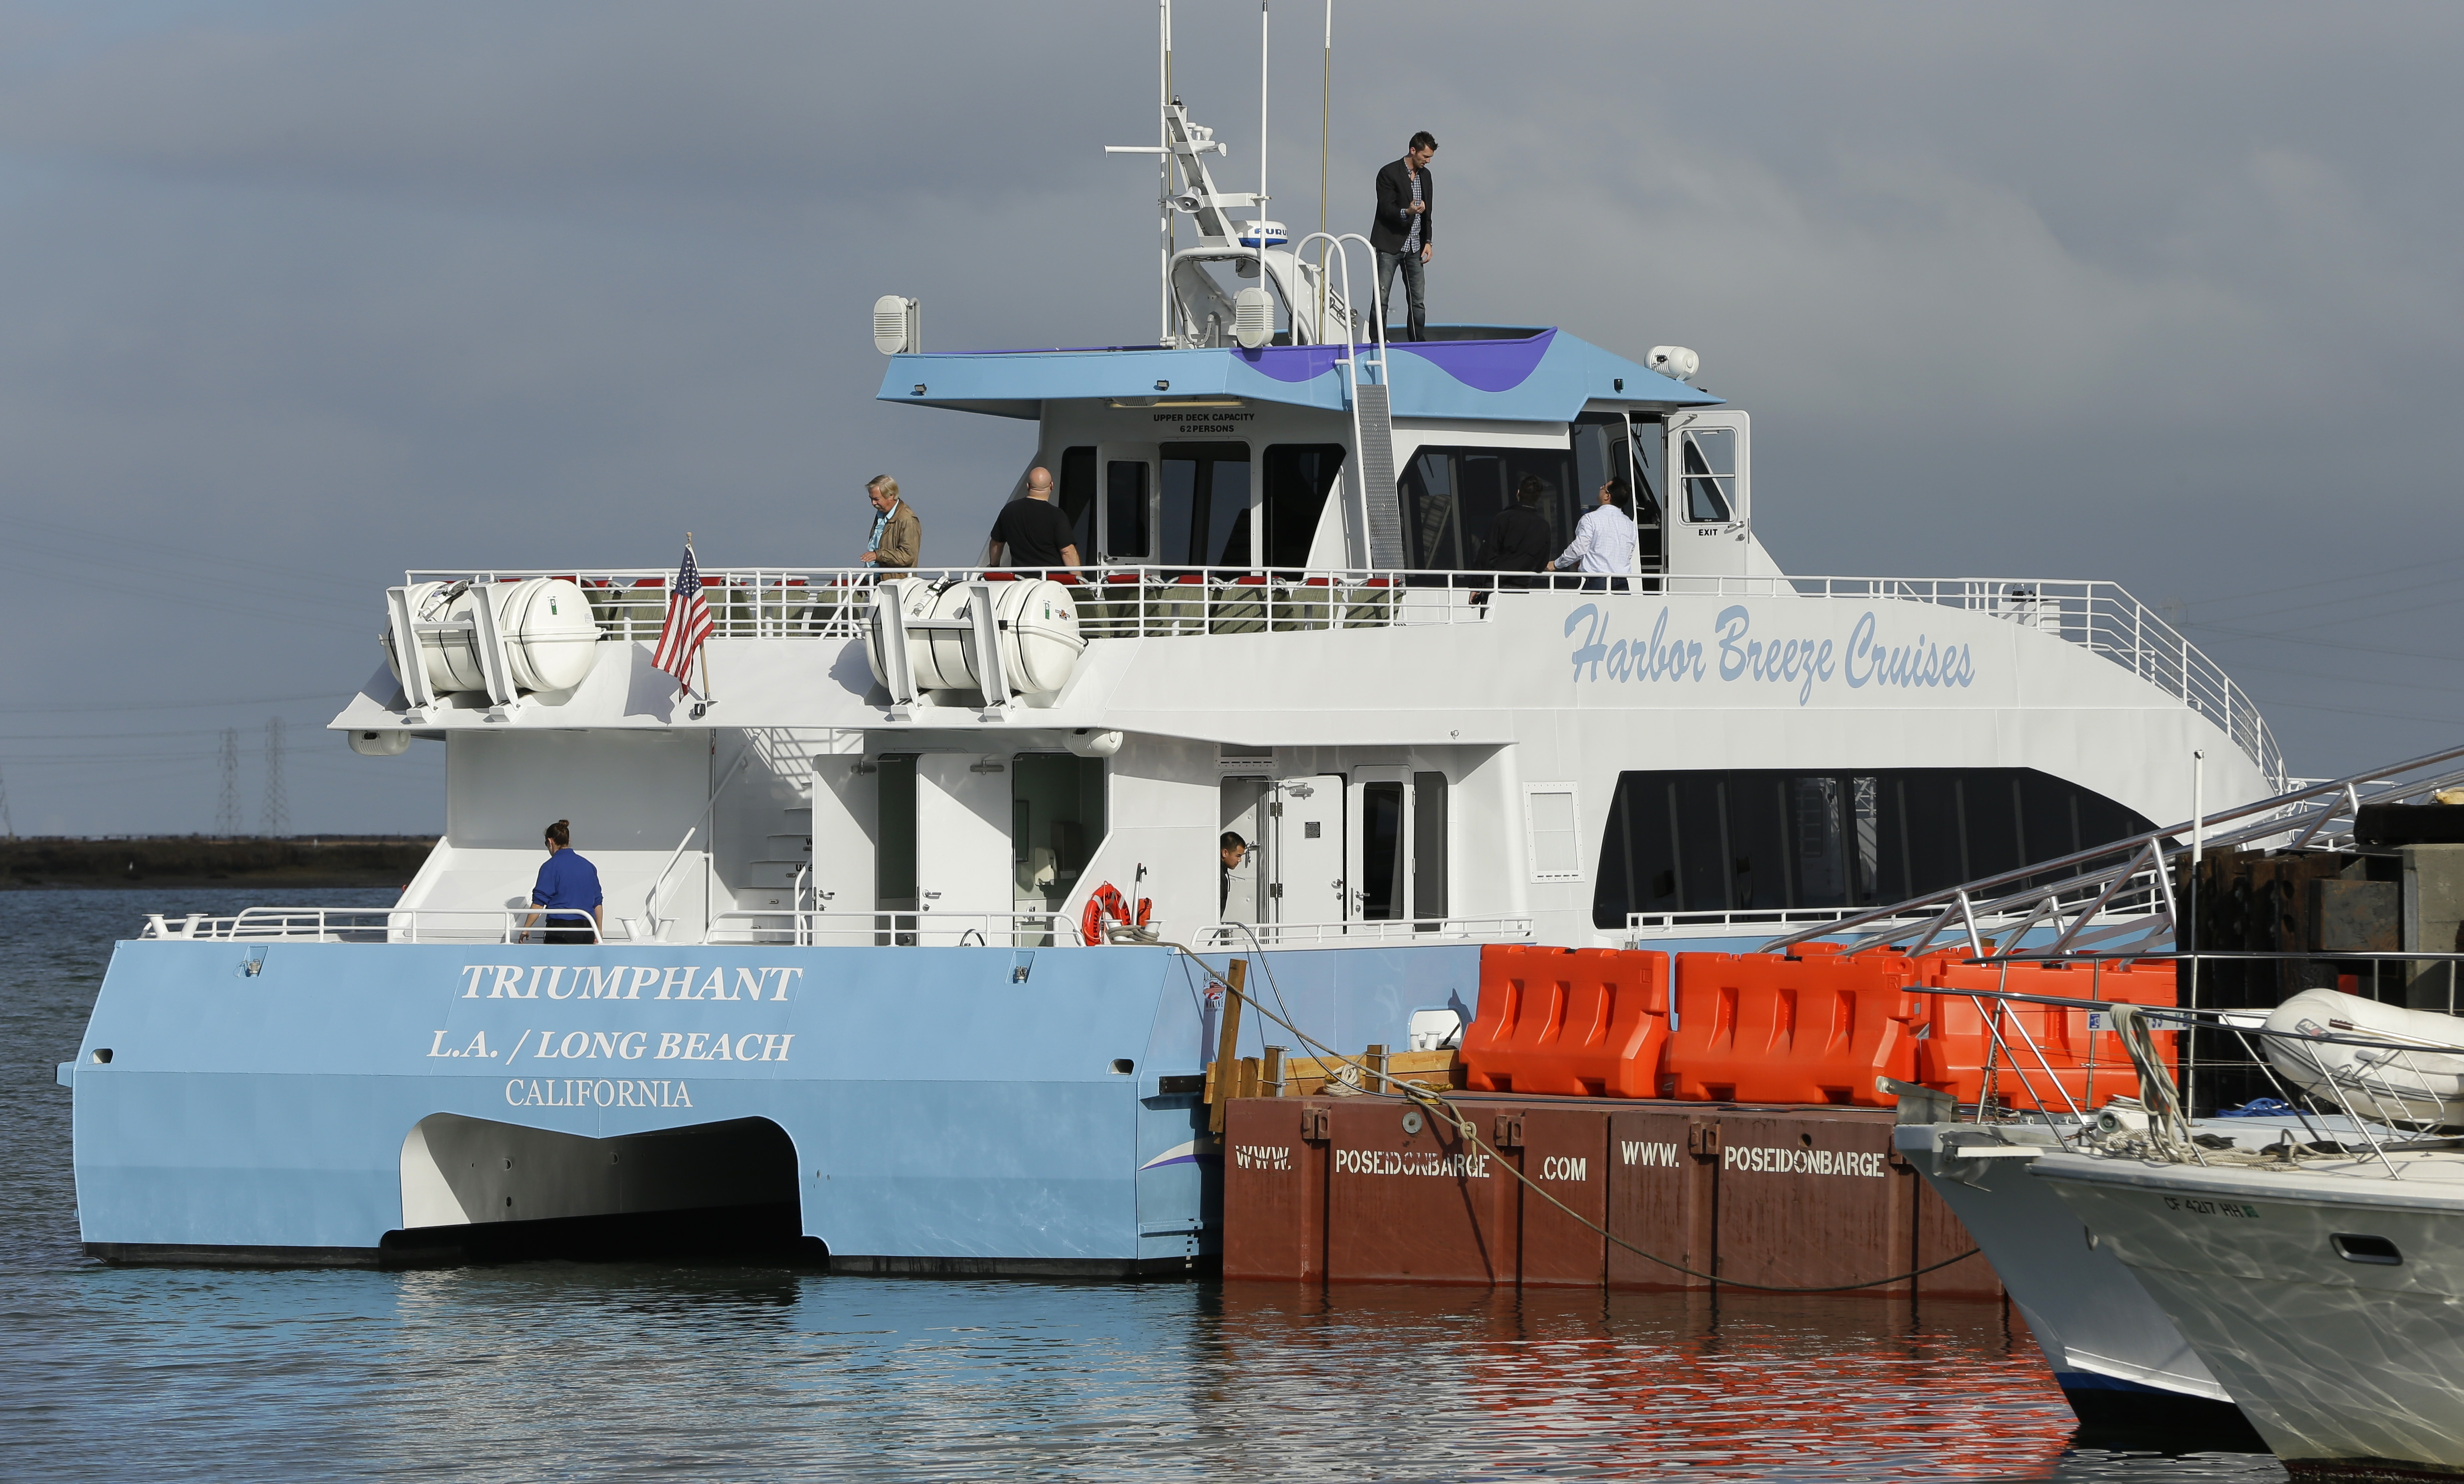 Commuters board a catamaran serving as a ferry for Google employees Thursday in Redwood City, Calif. The vessels ferries workers to and from San Francisco.